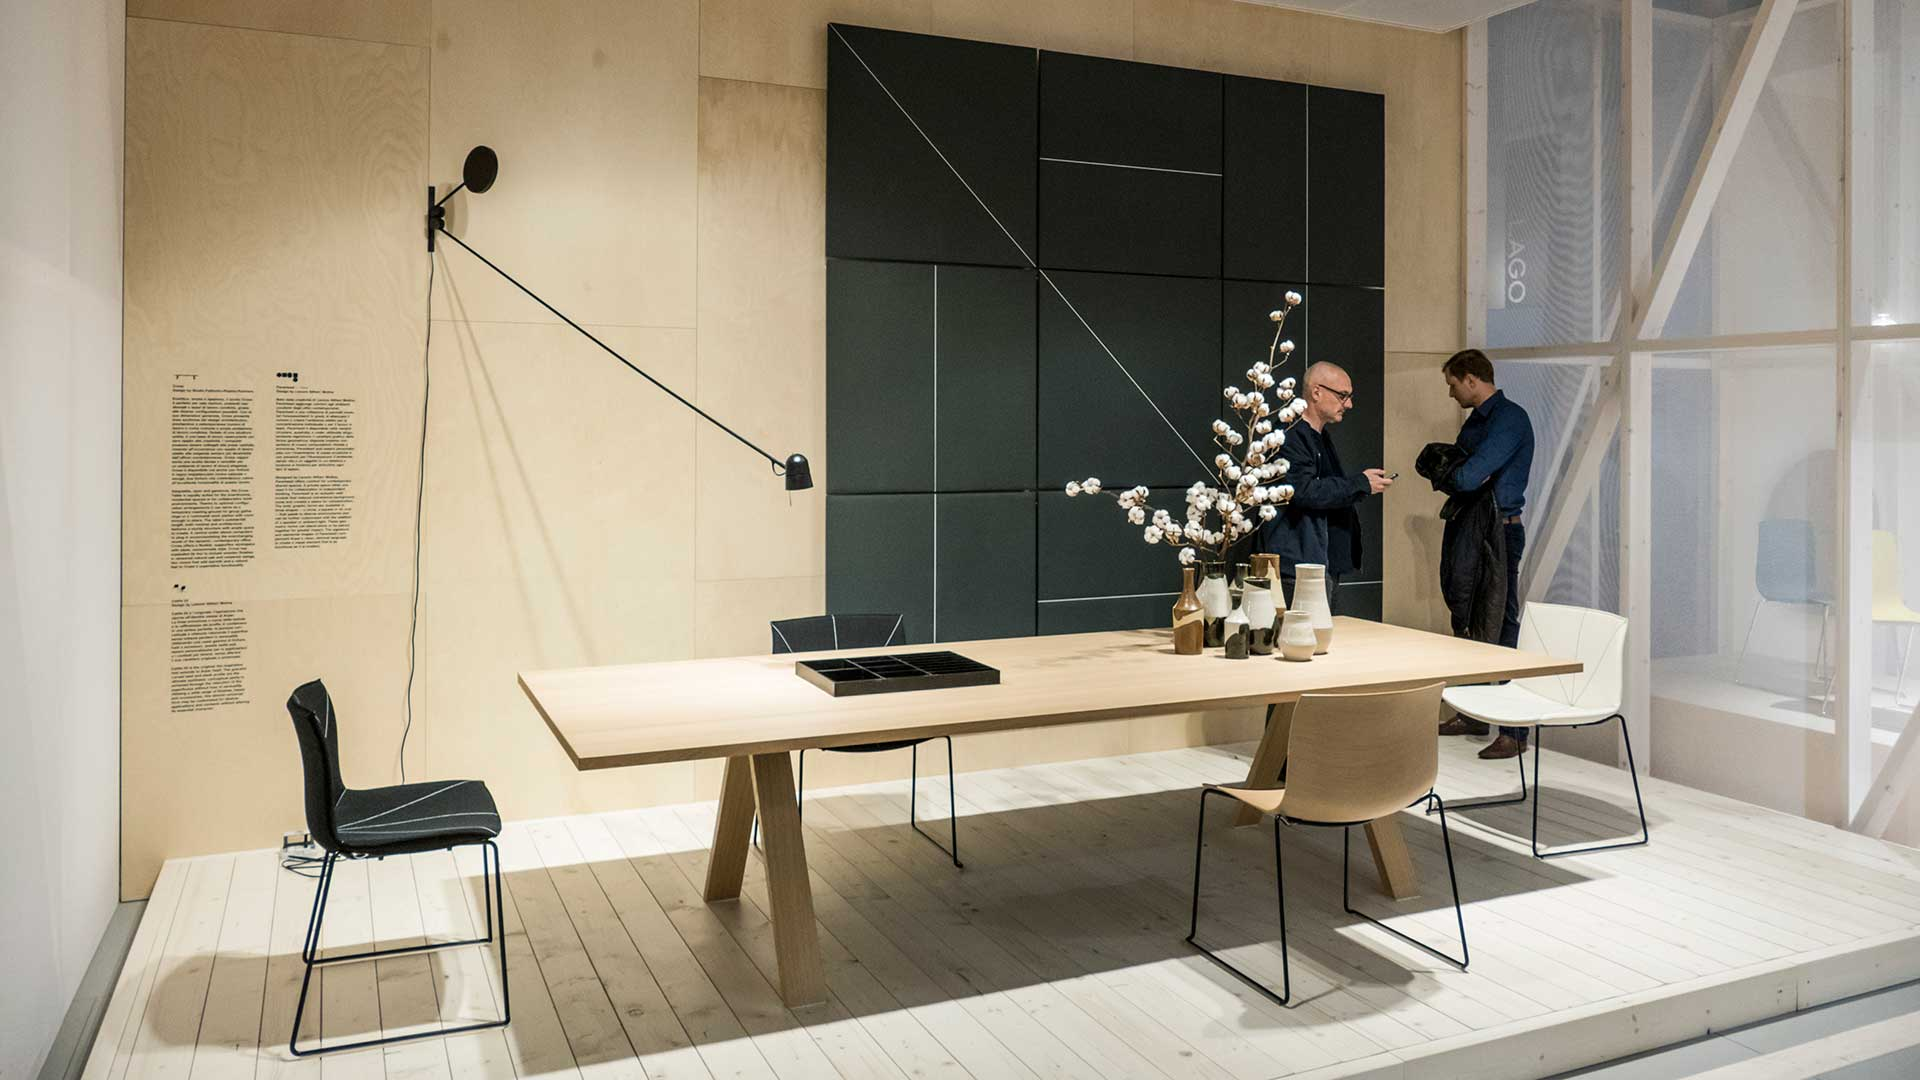 Salone del mobile 2016 la primavera milanese all 39 insegna for Salone del mobile di milano 2016